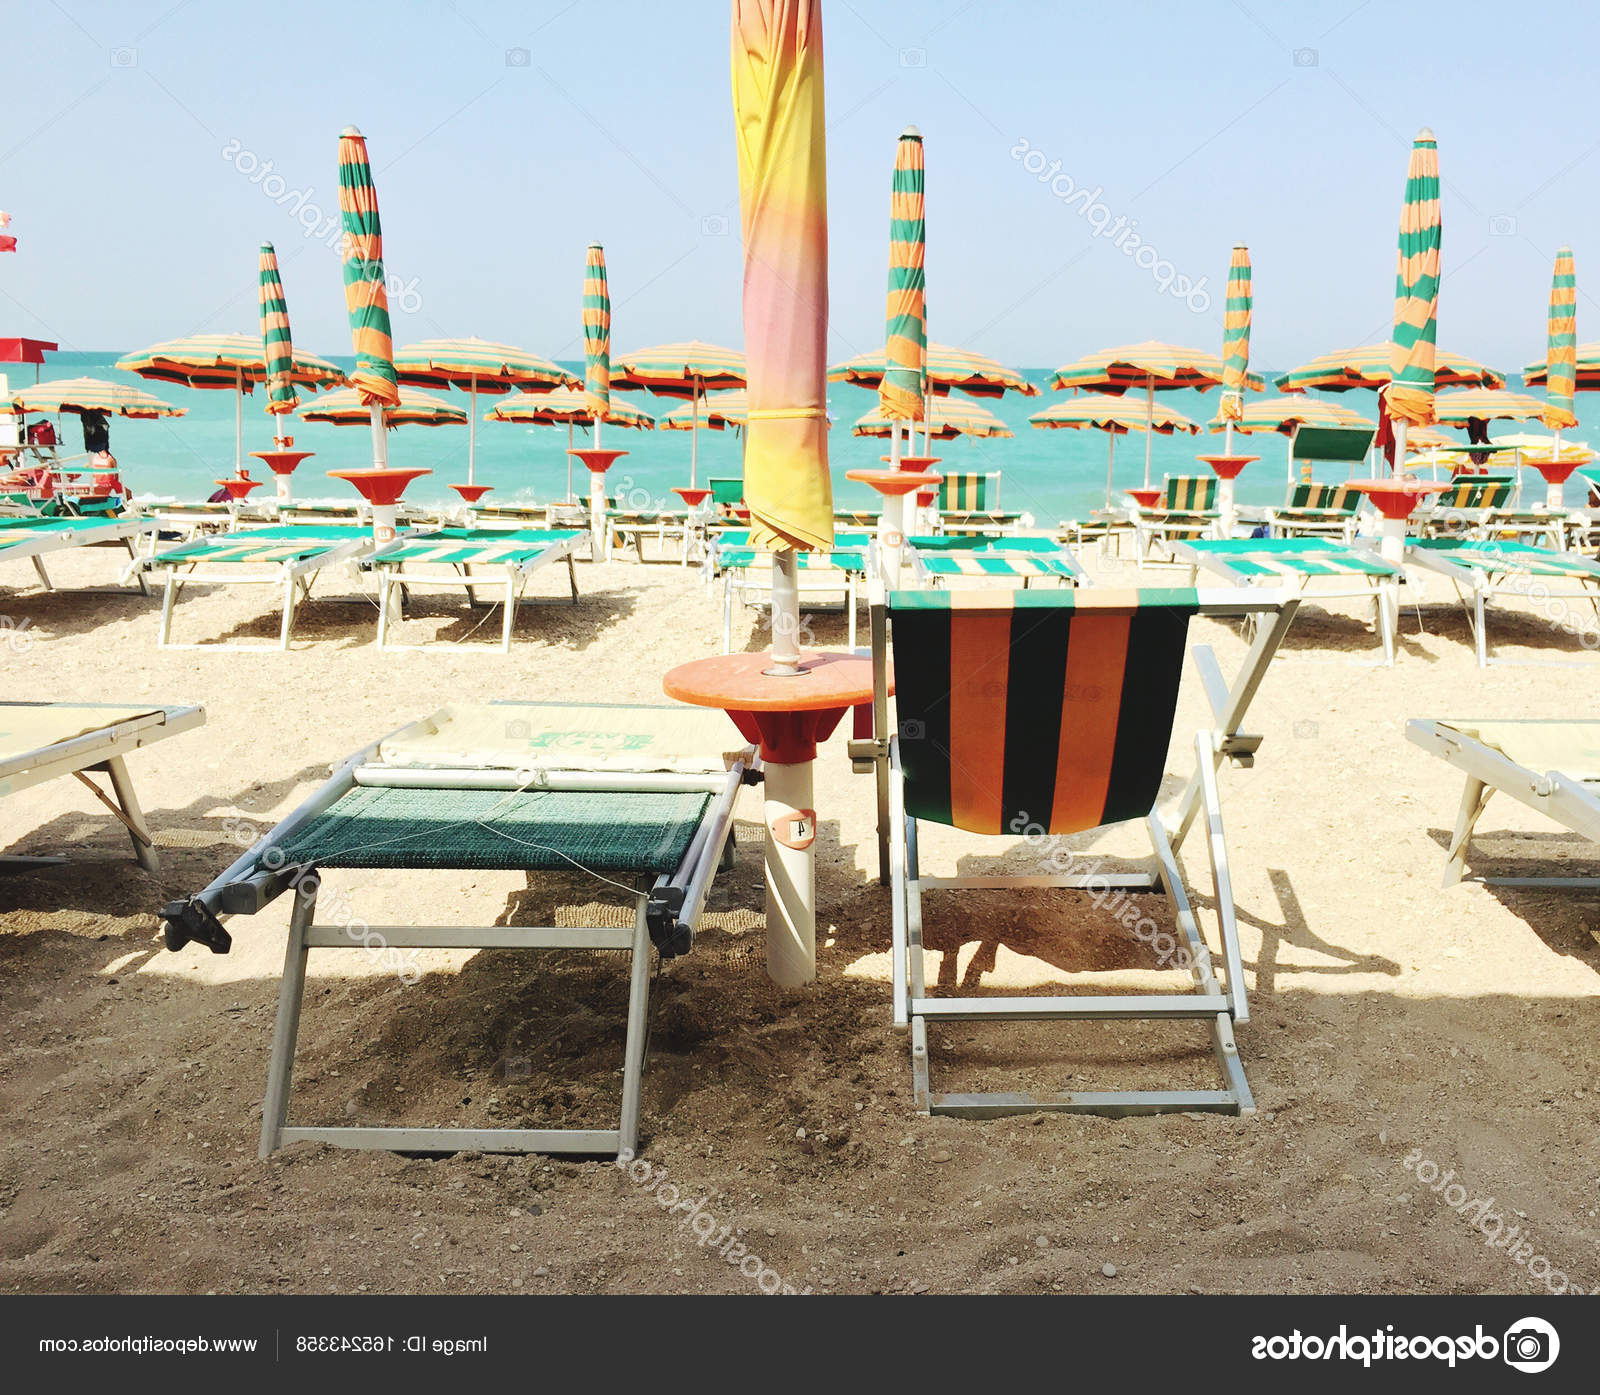 Current Italian Beach Umbrellas Within Italian Beach With Umbrellas — Stock Photo © Rarrarorro # (View 18 of 20)